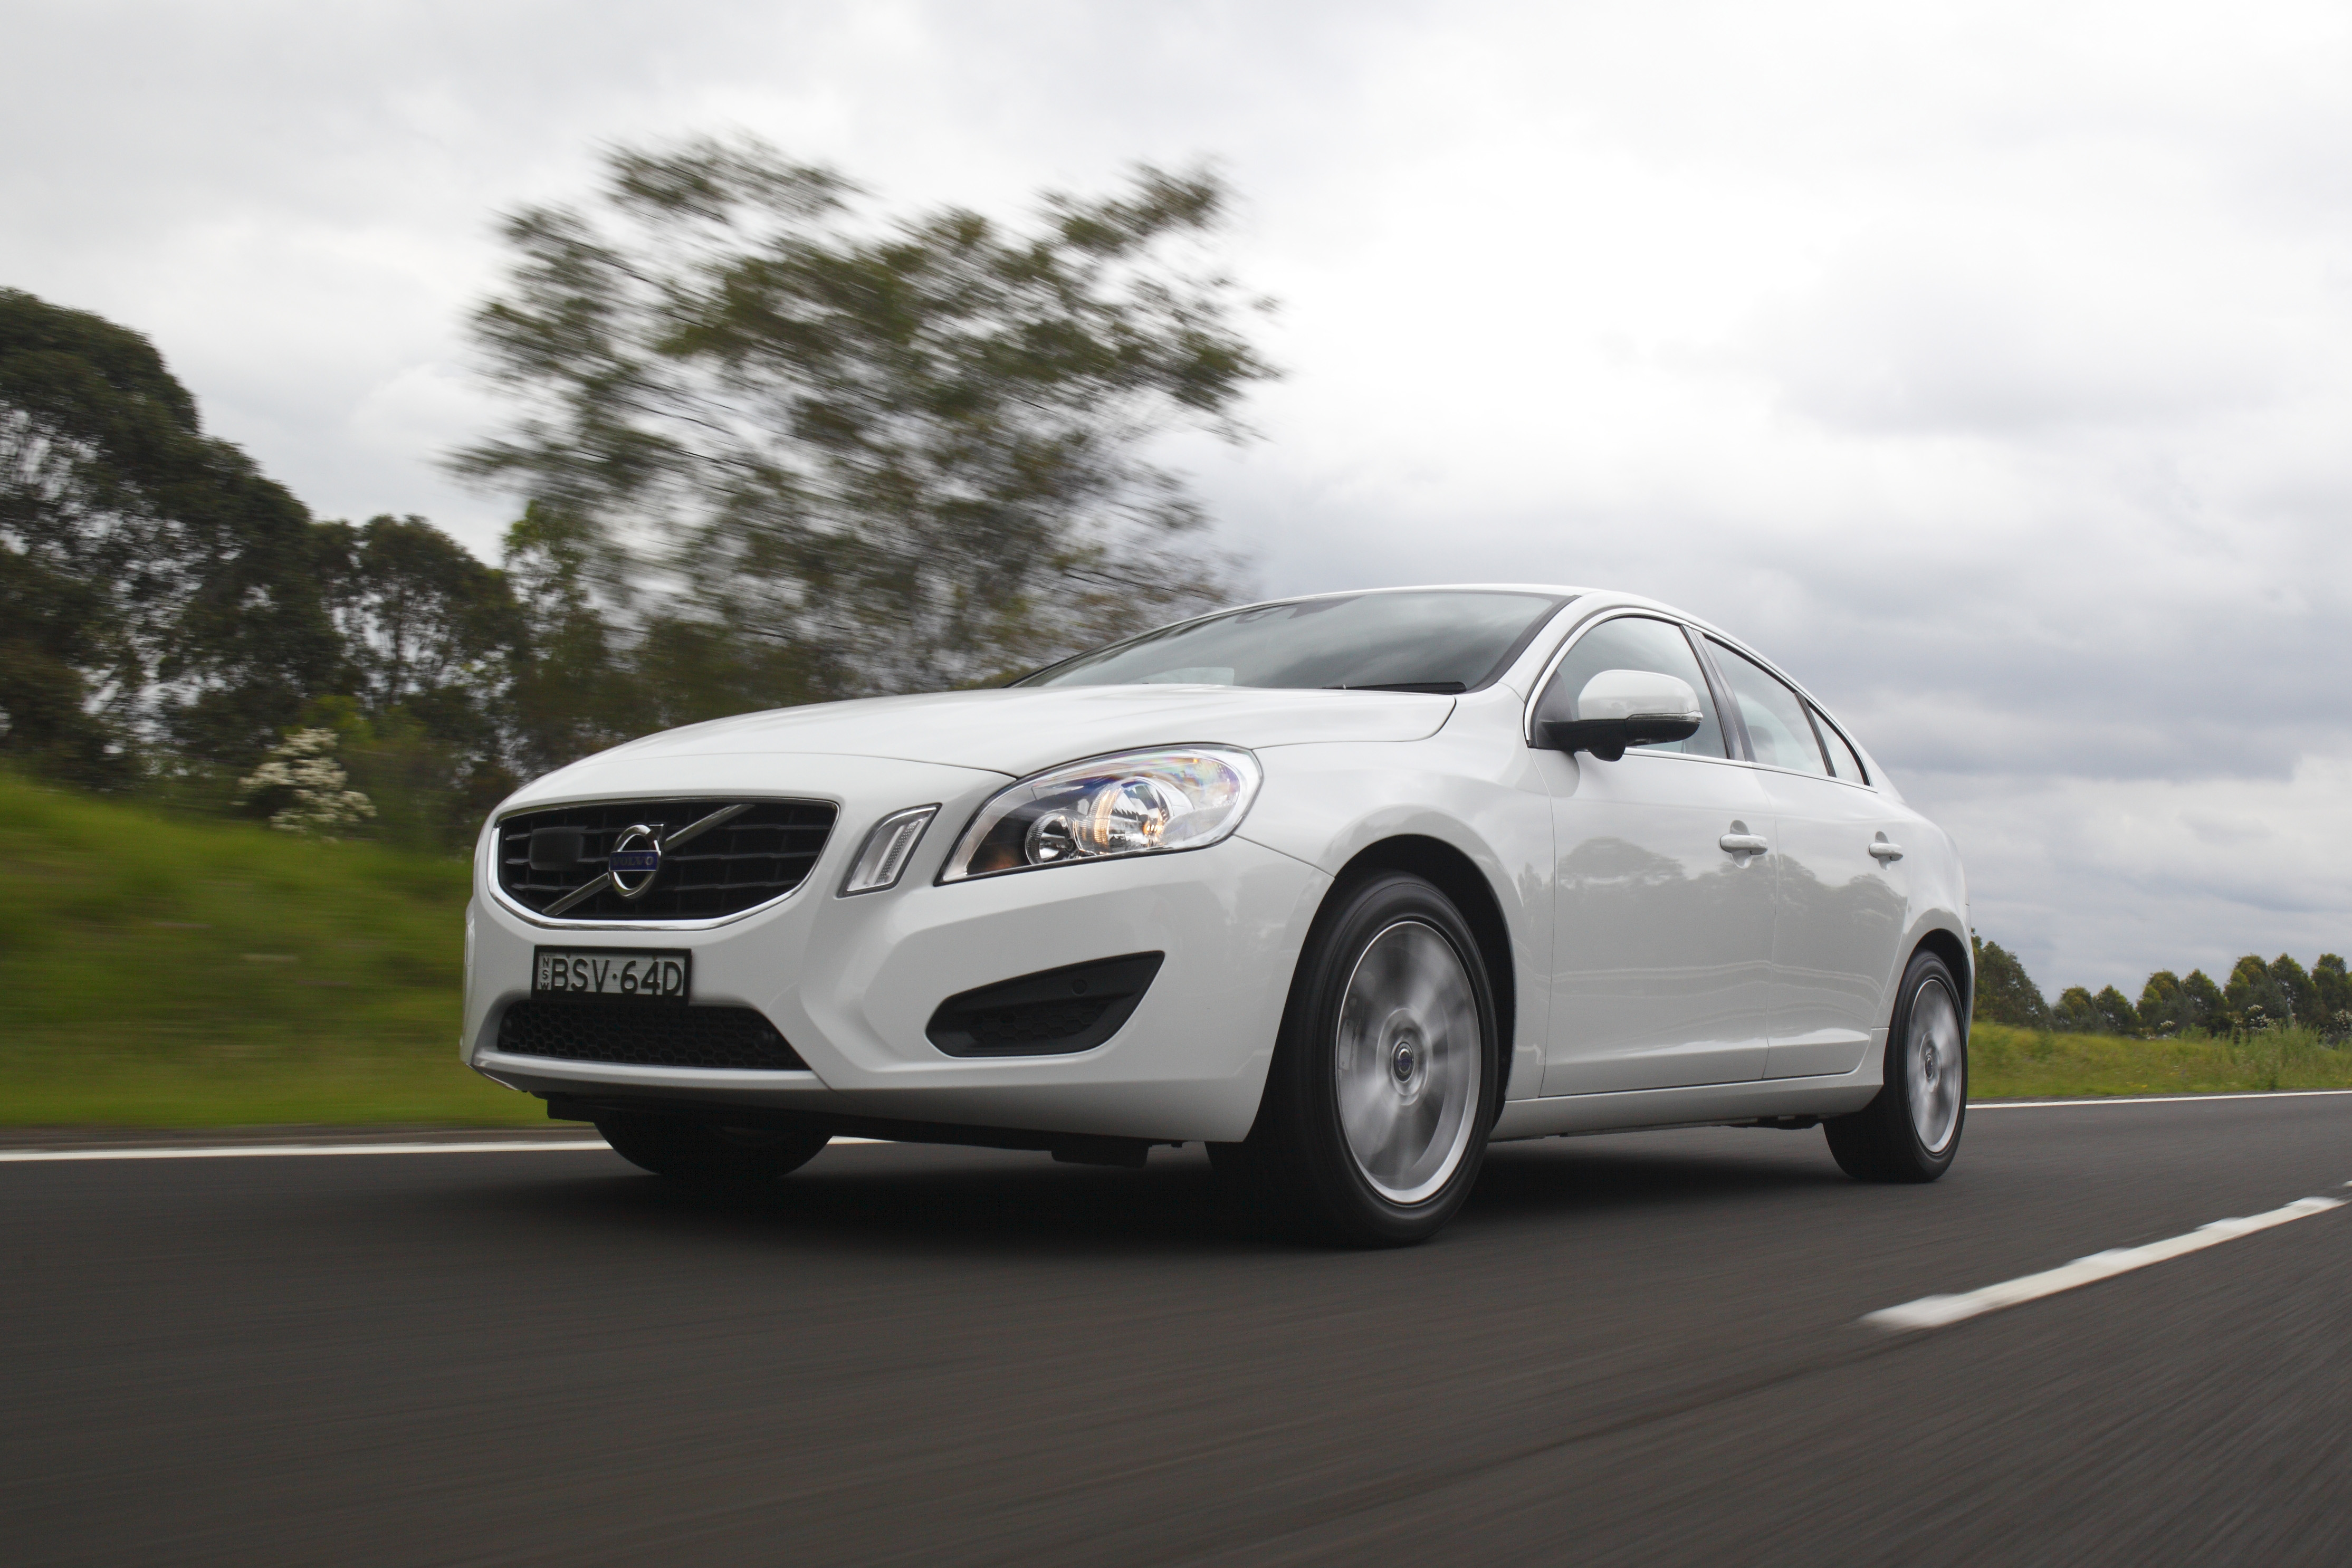 Volvo S60: Other alarm-related functions